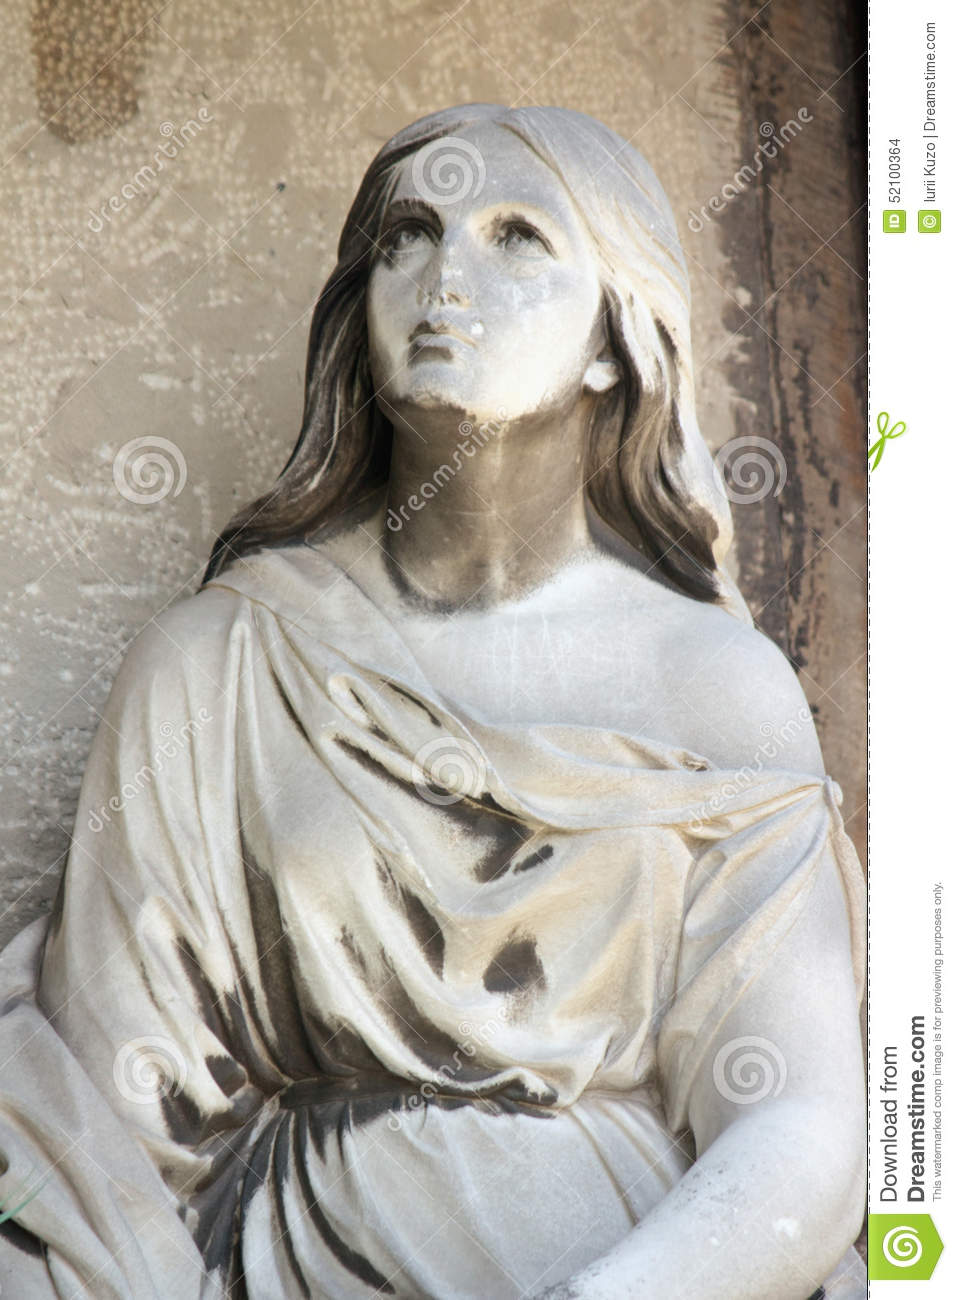 Fragment os statue of Mary Magdalene